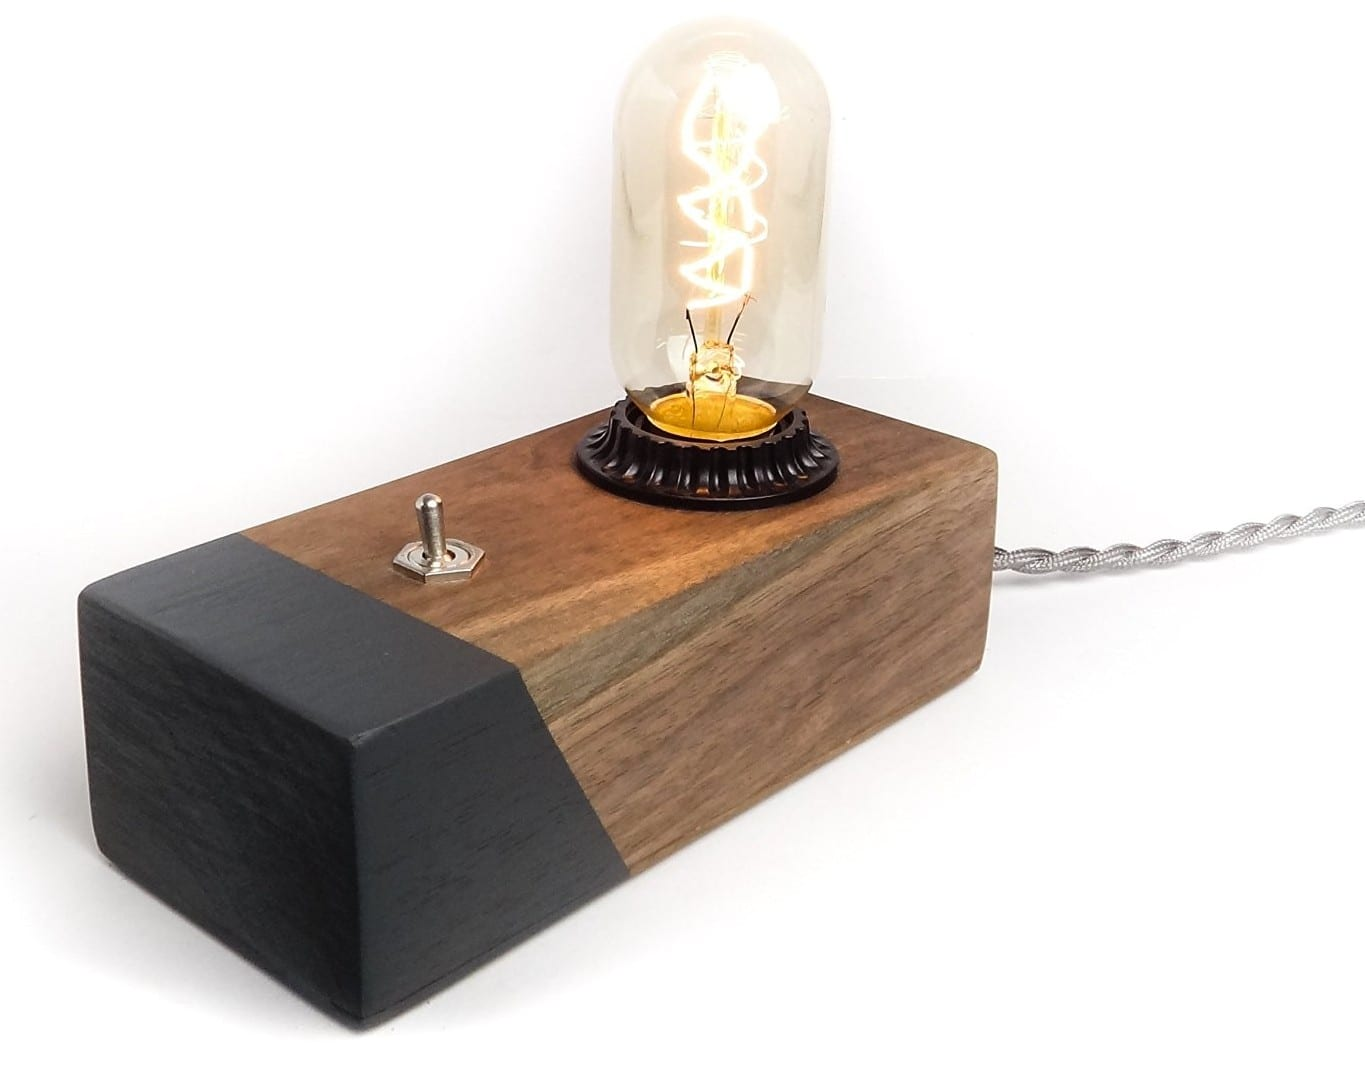 edison-light-desk-lamp-teen-gifts-2016-2017-christmas